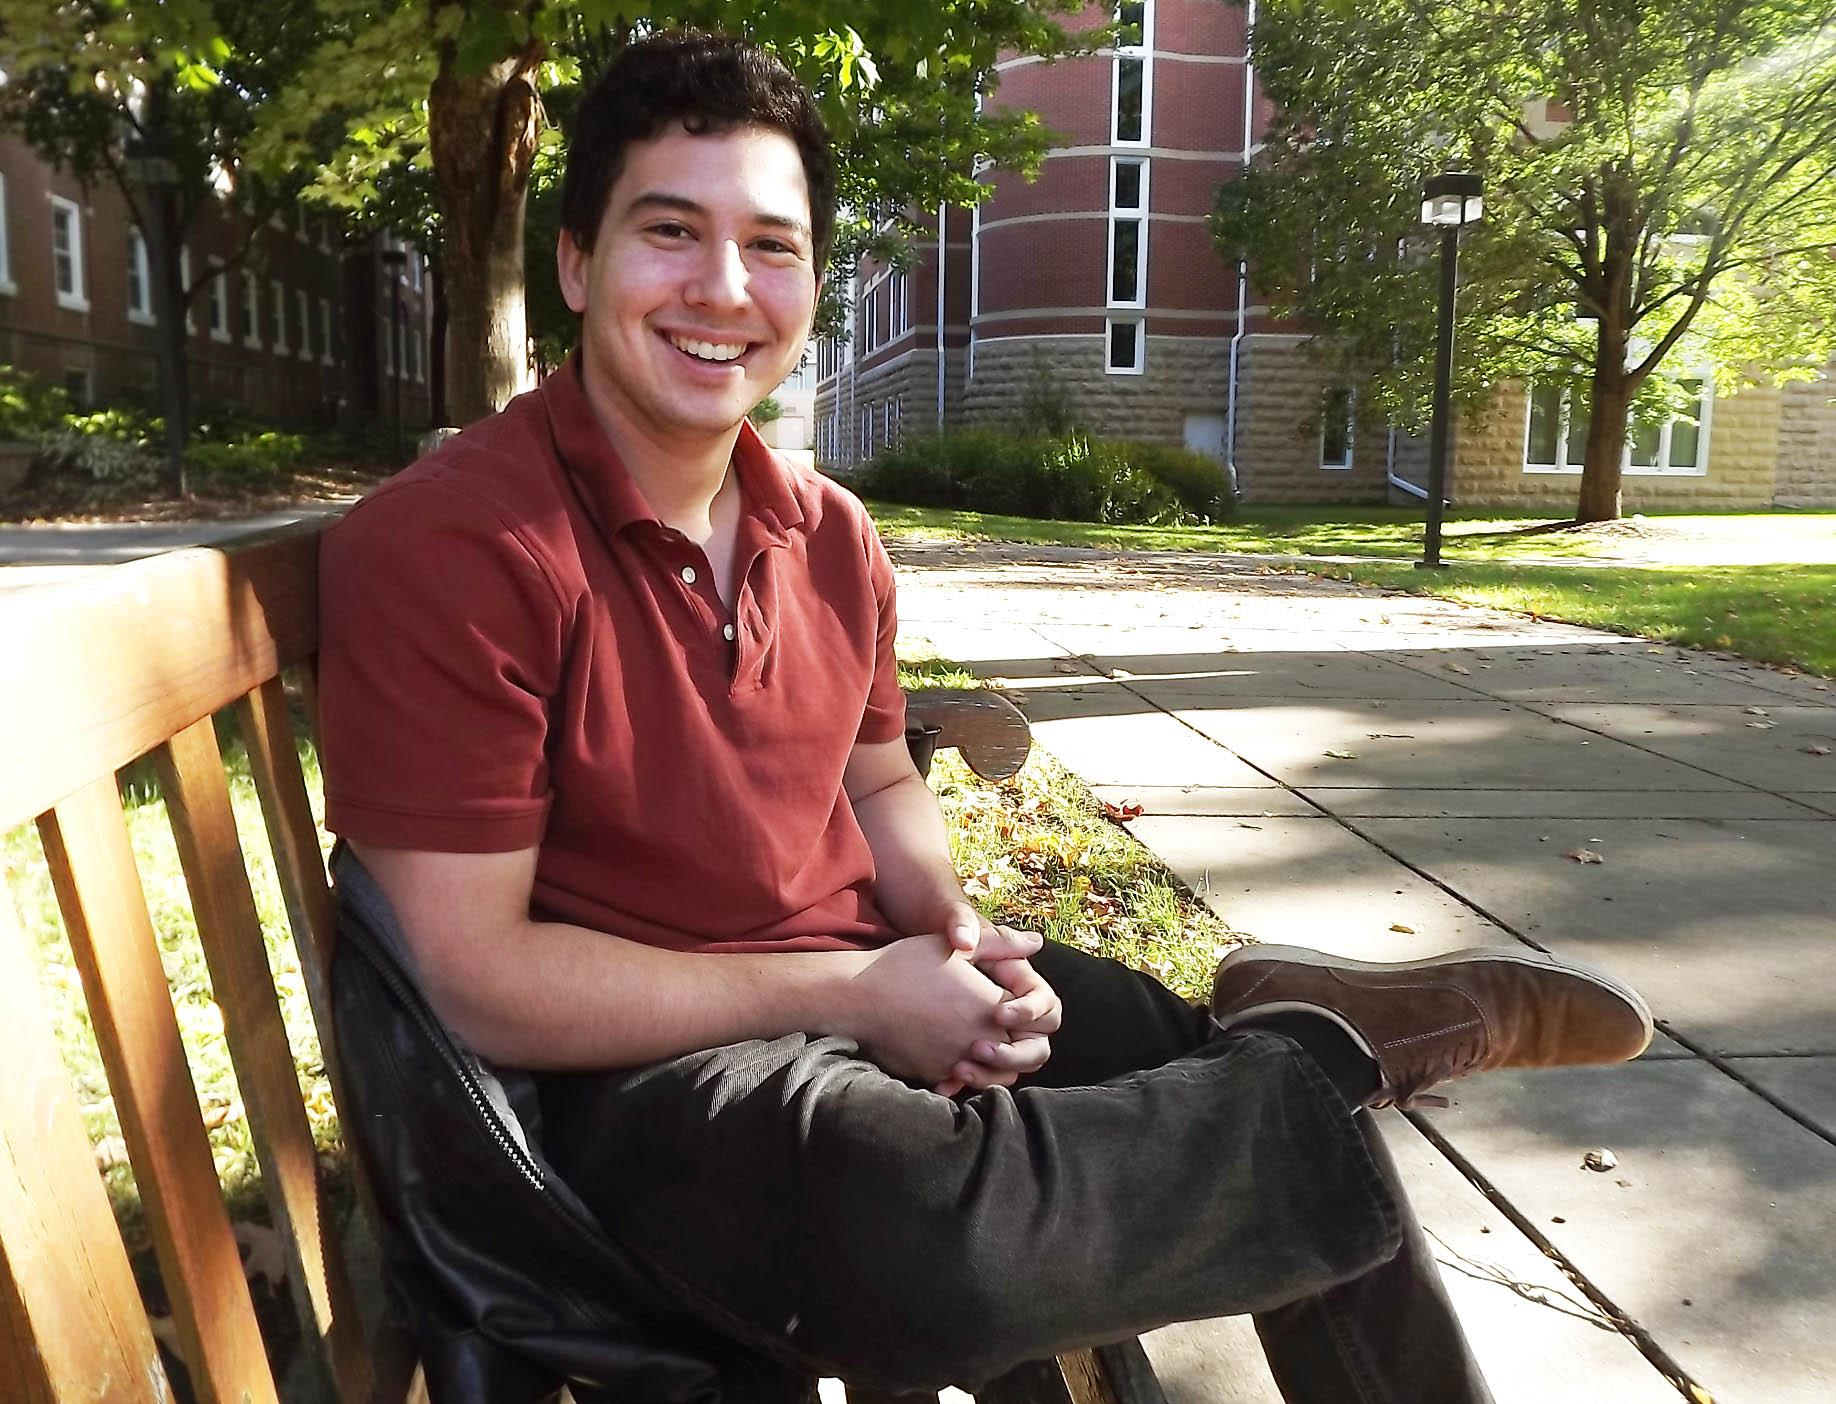 Caballero'15 grew up in Paraguay but came to the U.S. for high school and college. He says his identity is